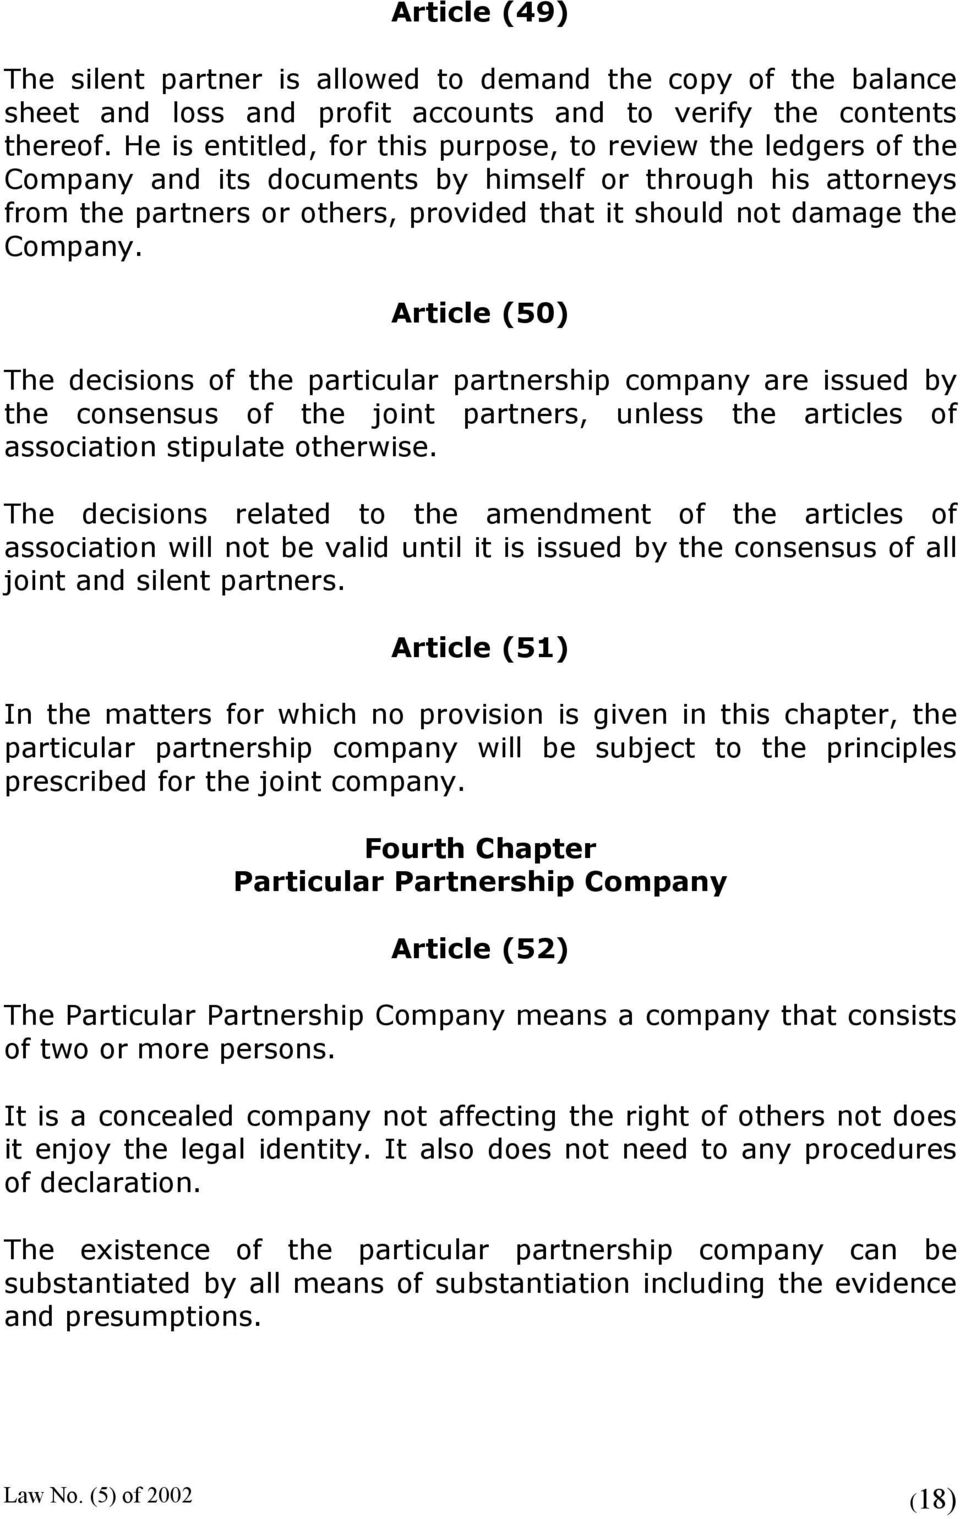 Company. Article (50) The decisions of the particular partnership company are issued by the consensus of the joint partners, unless the articles of association stipulate otherwise.